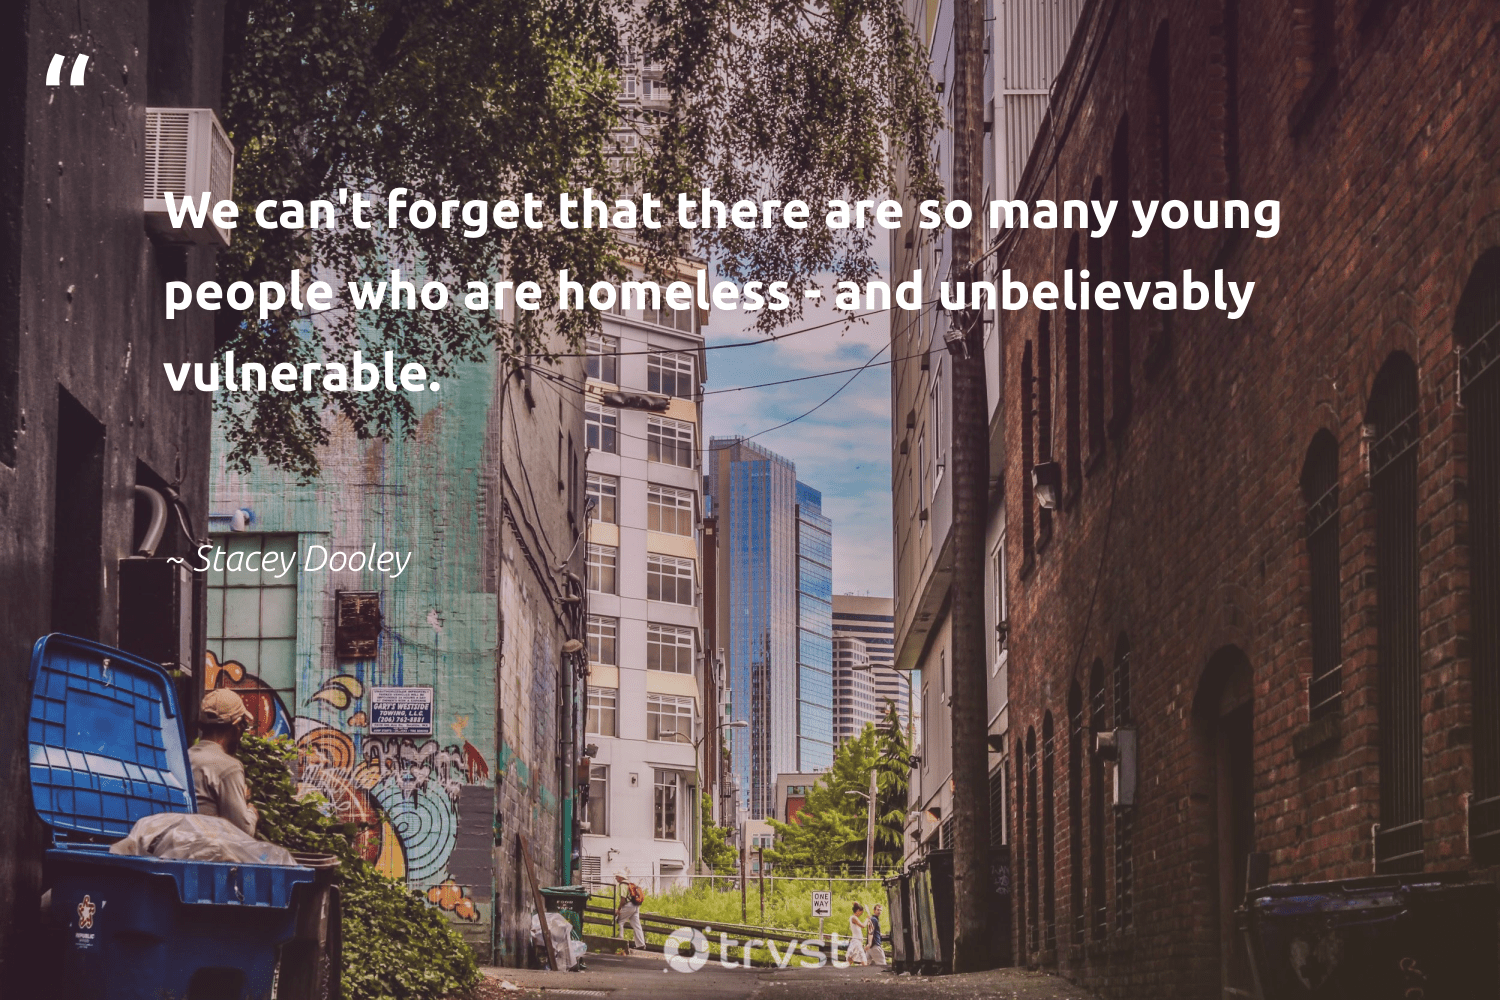 """""""We can't forget that there are so many young people who are homeless - and unbelievably vulnerable.""""  - Stacey Dooley #trvst #quotes #homelessness #homeless #weareallone #inclusion #bethechange #equalopportunity #equalrights #impact #makeadifference #sustainablefutures"""